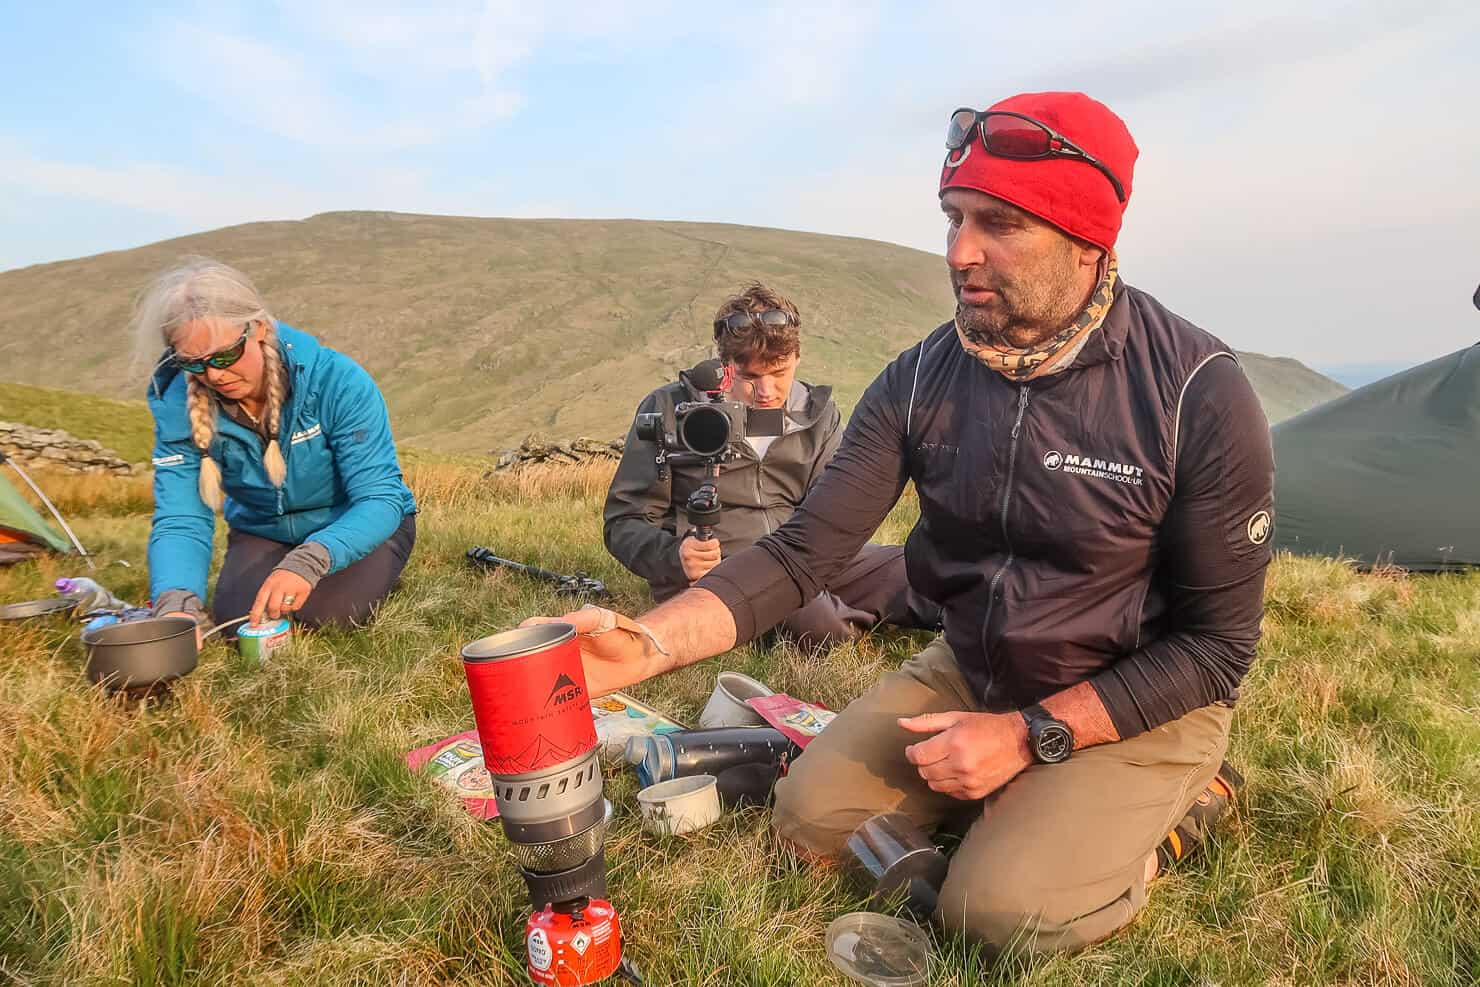 Learning to use a camping stove whilst wild camping in the UK.